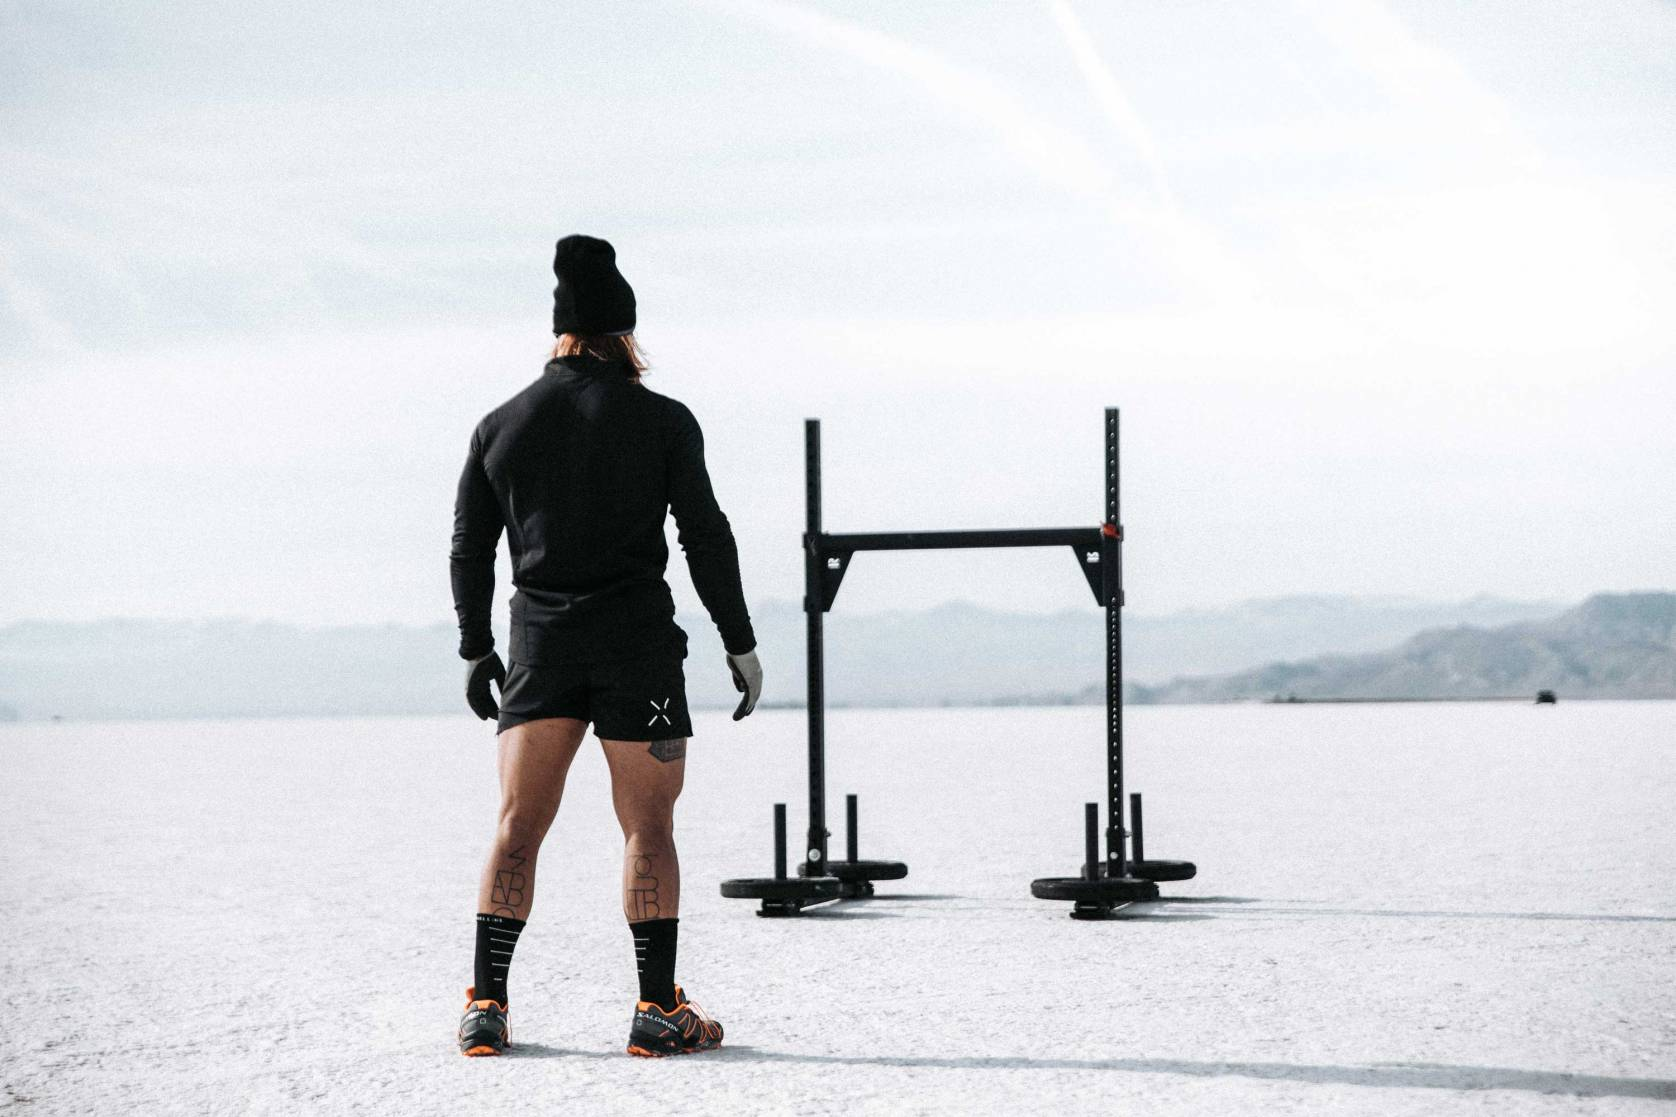 michael miraglia's one-man strongman marathon